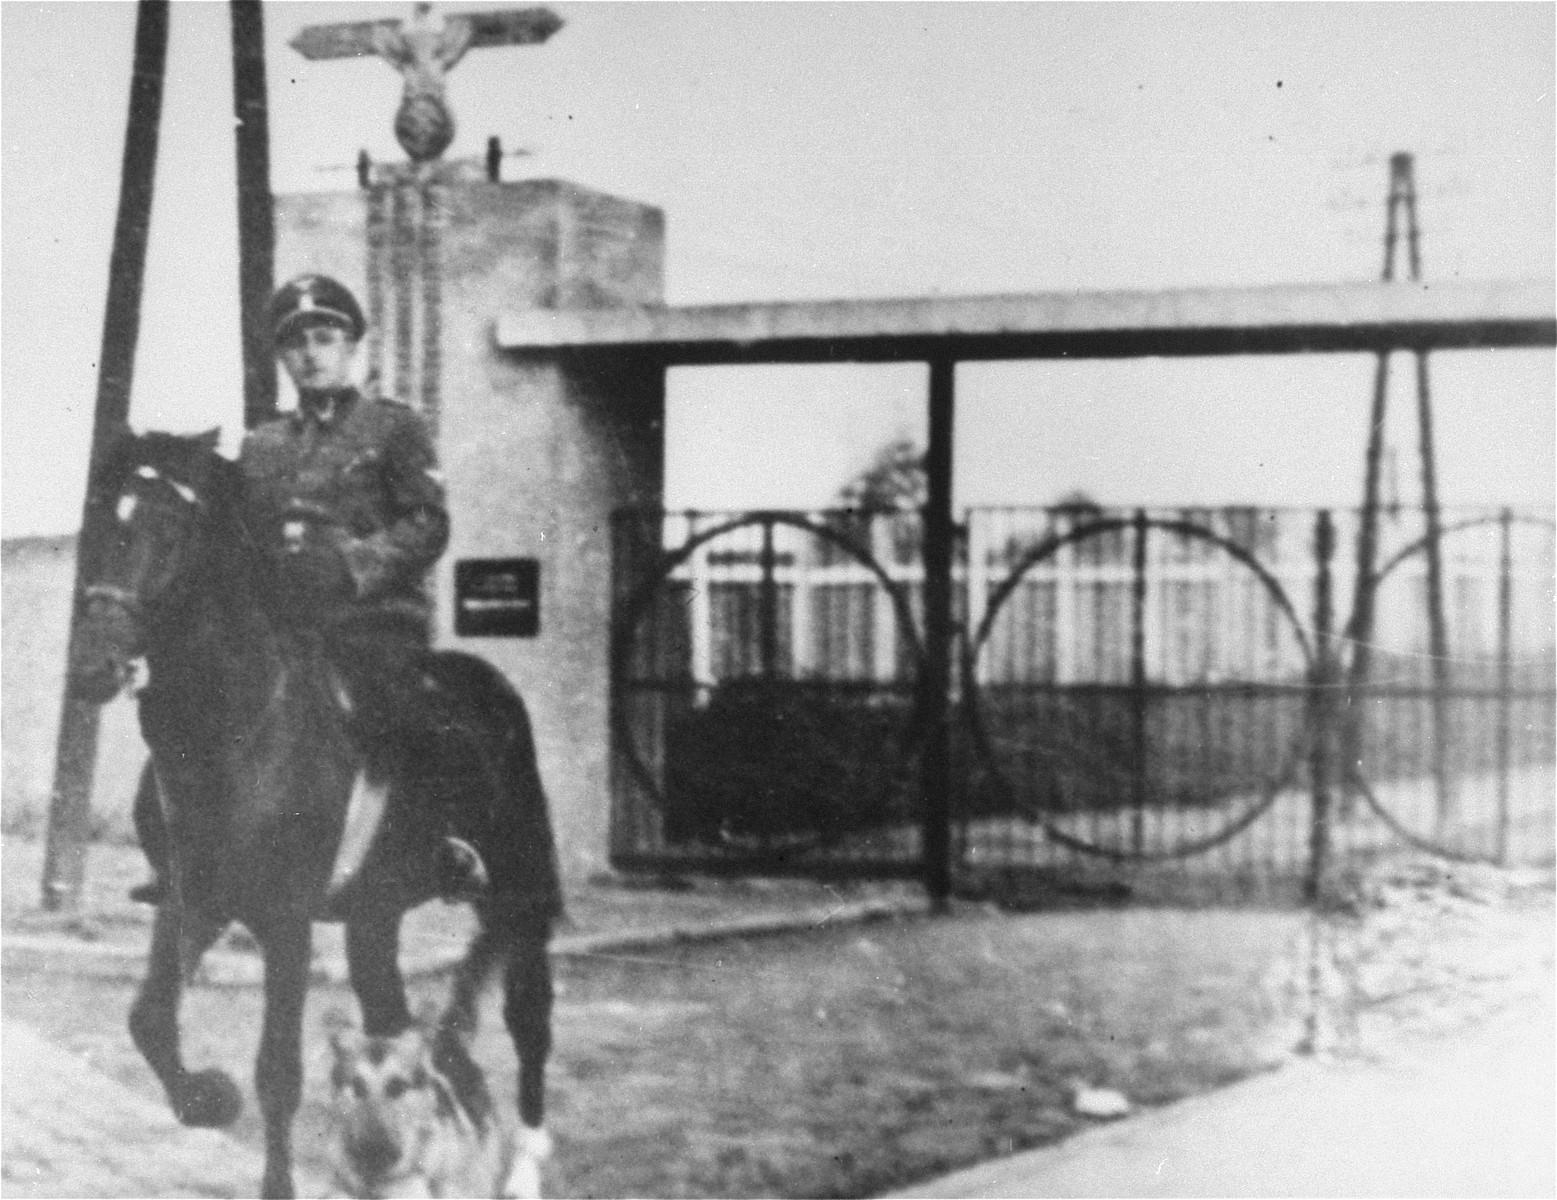 SS Untersturmfuehrer Gustav Wilhaus rides a horse out the main gate of the Janowska concentration camp.